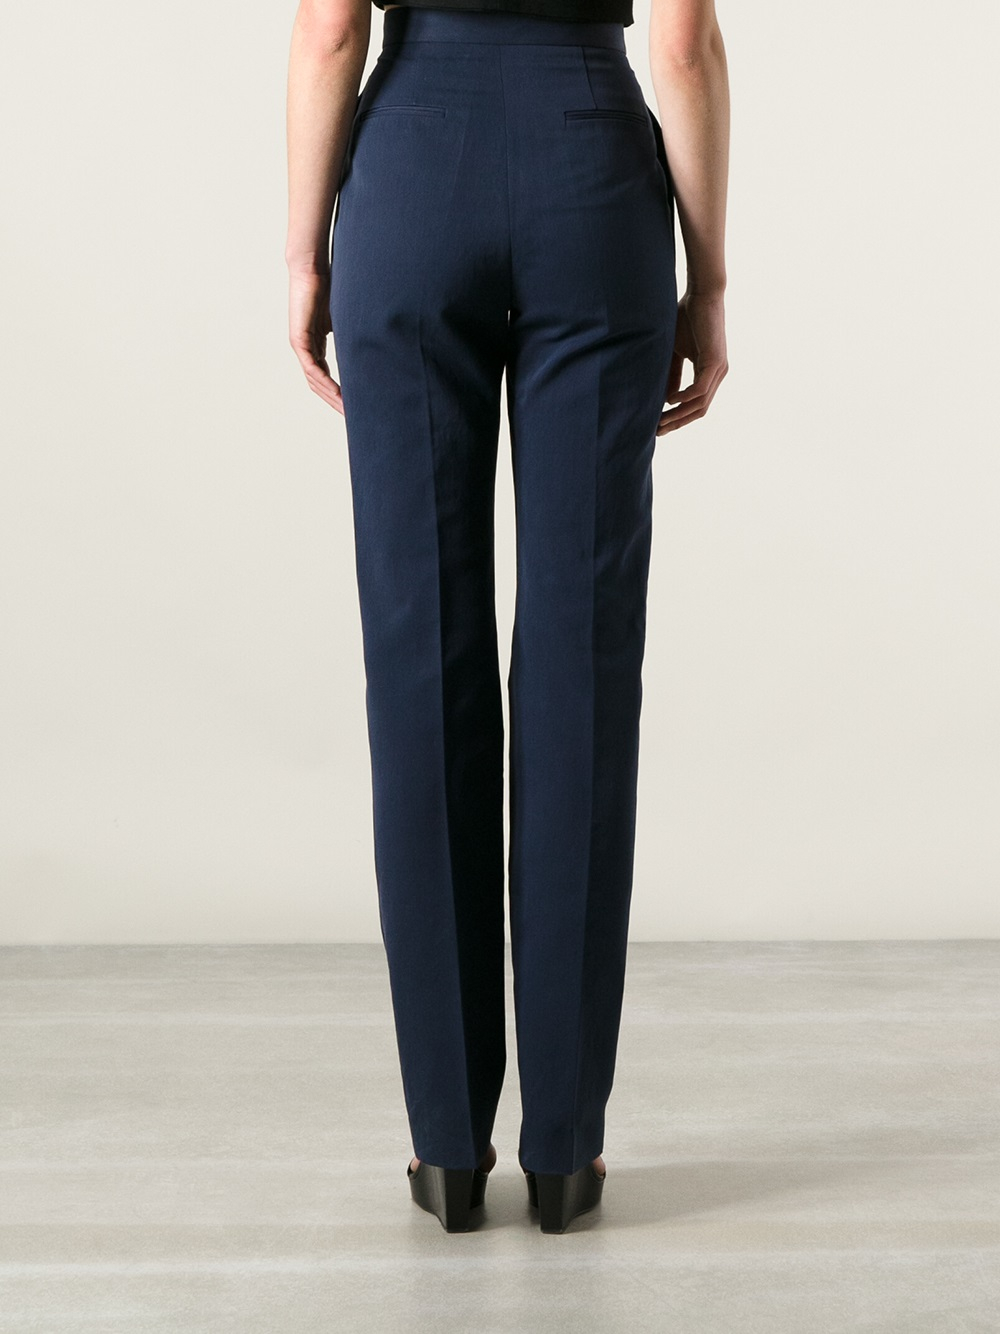 Image result for stella mccartney blue high waist trouser